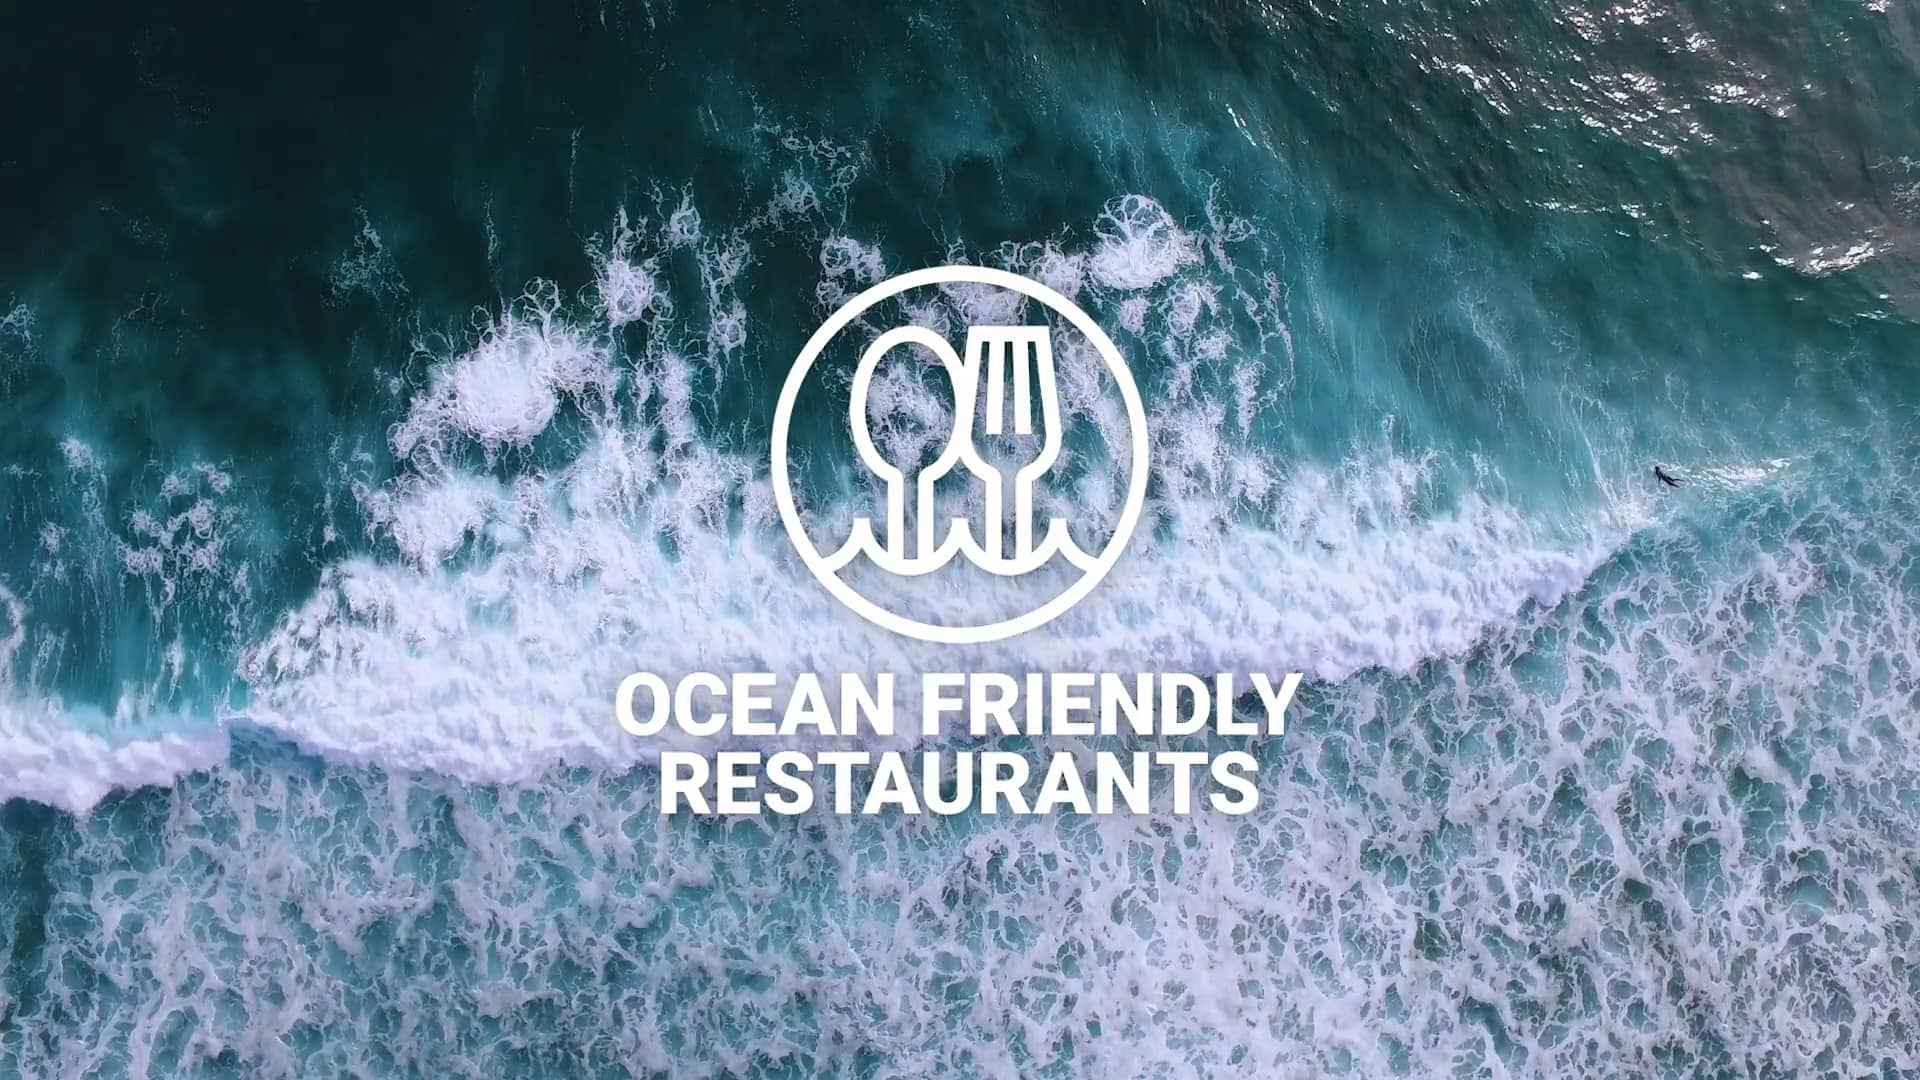 Highlighting Ocean Friendly Restaurant's